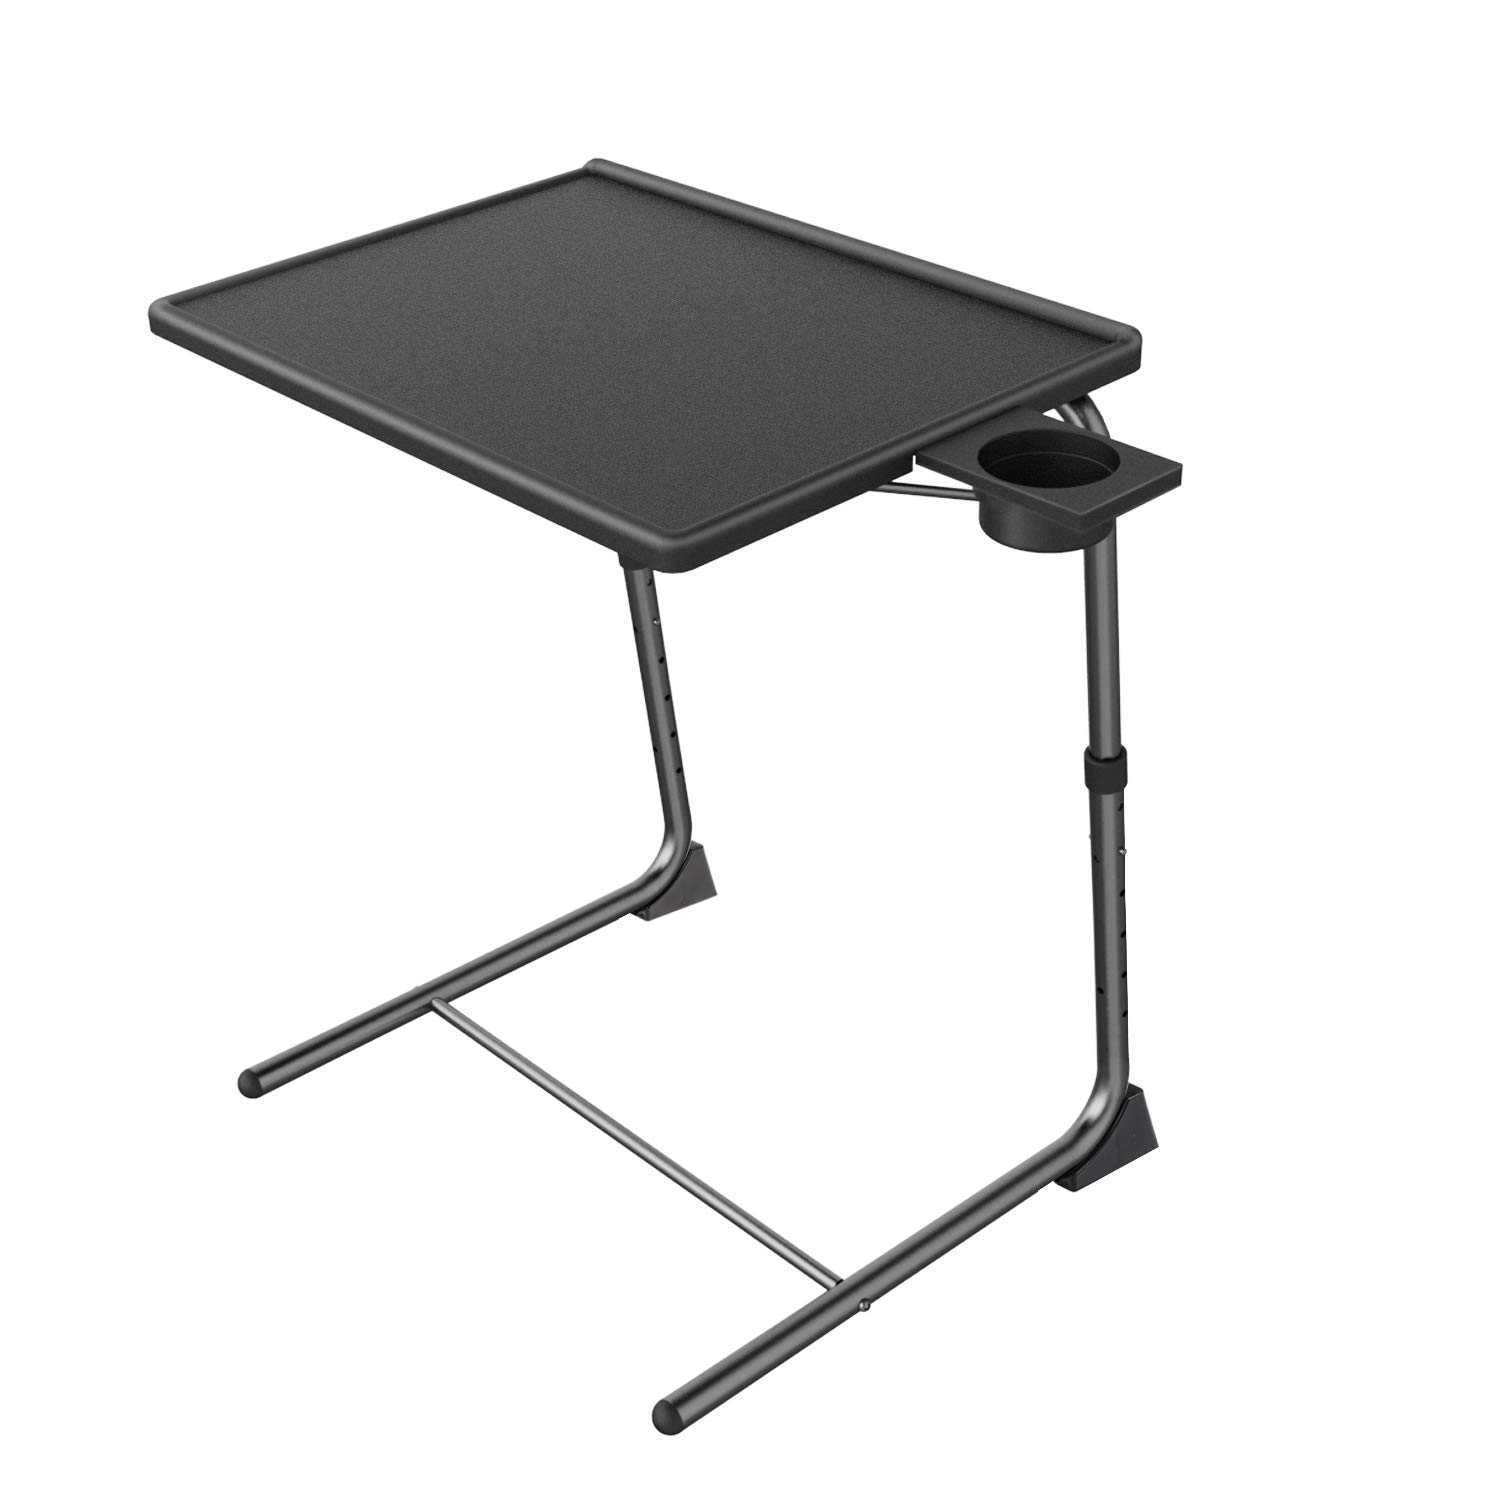 Adjustable TV Tray Table - TV Dinner Tray on Bed & Sofa, Comfortable Folding Table with 6 Height & 3 Tilt Angle Adjustments by HUANUO by HUANUO